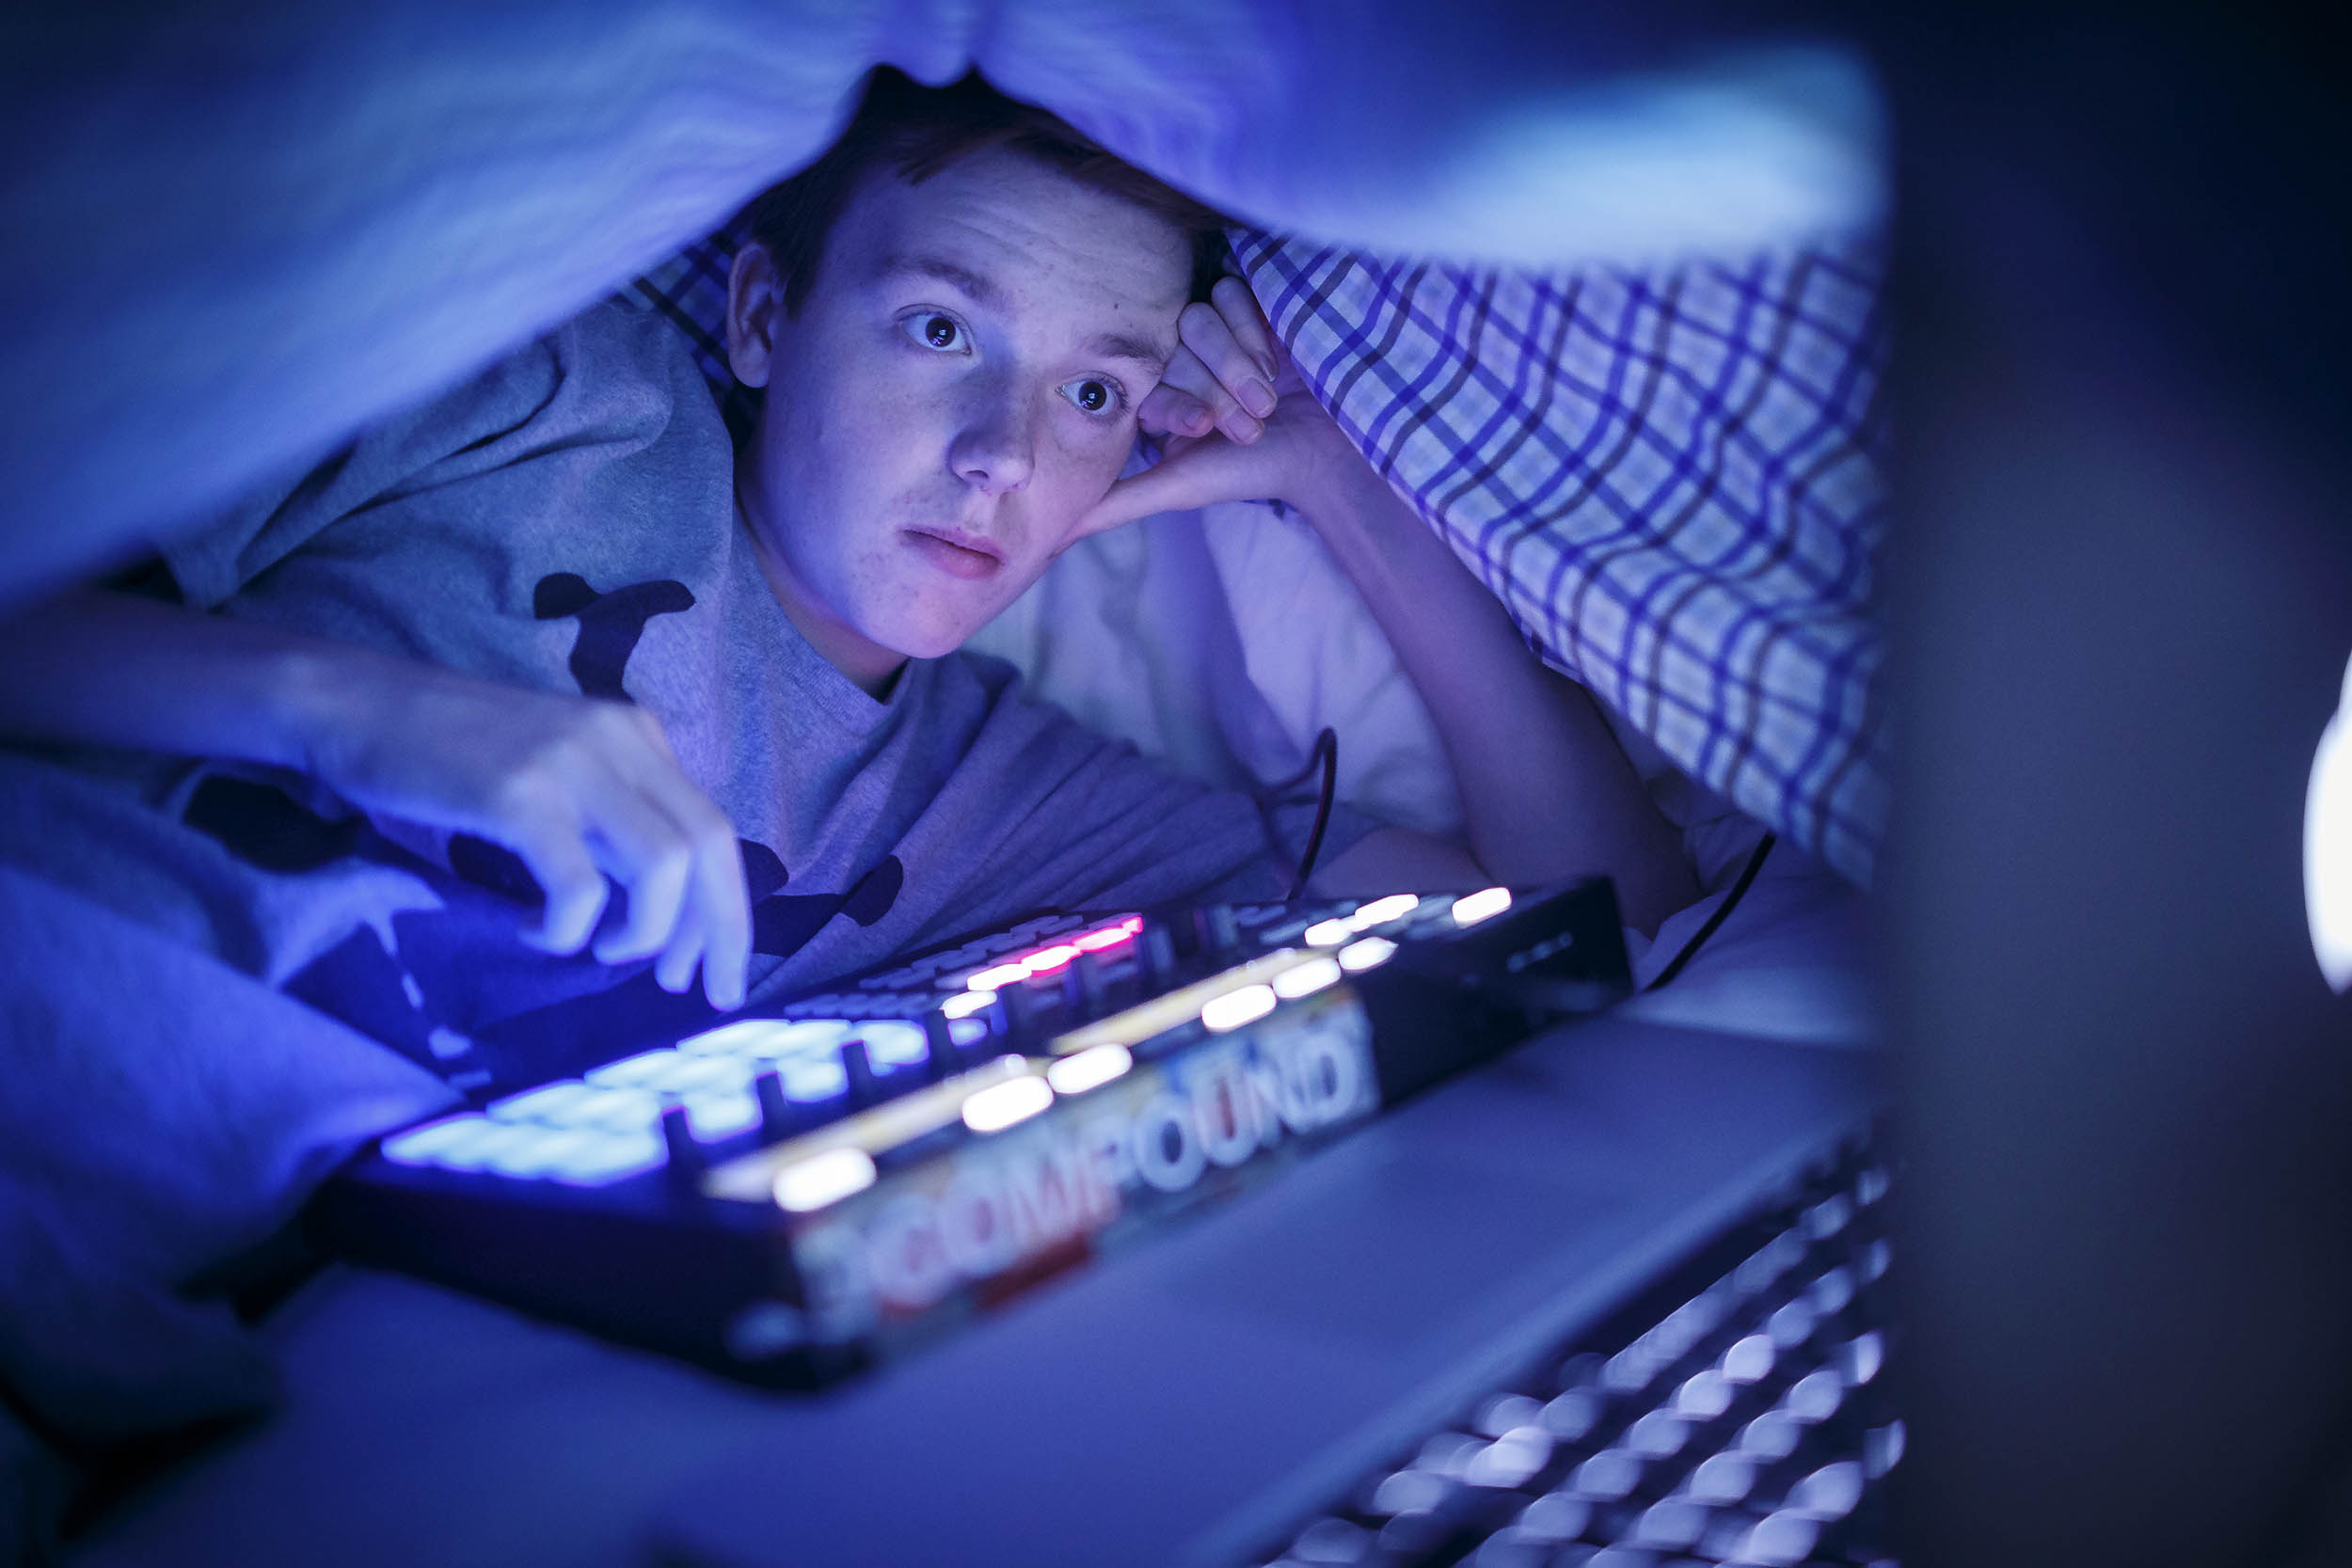 """In his bedroom at night Owen Lanahan, age 15, make beats, watches Youtube video, and texts his friends under the covers to hide from his mom. He says he will stay up until around 2am once or twice a week doing this. Currently there is a term for this called """"vamping"""" where kids will stay up all night on their computers and social media. The New York Times"""